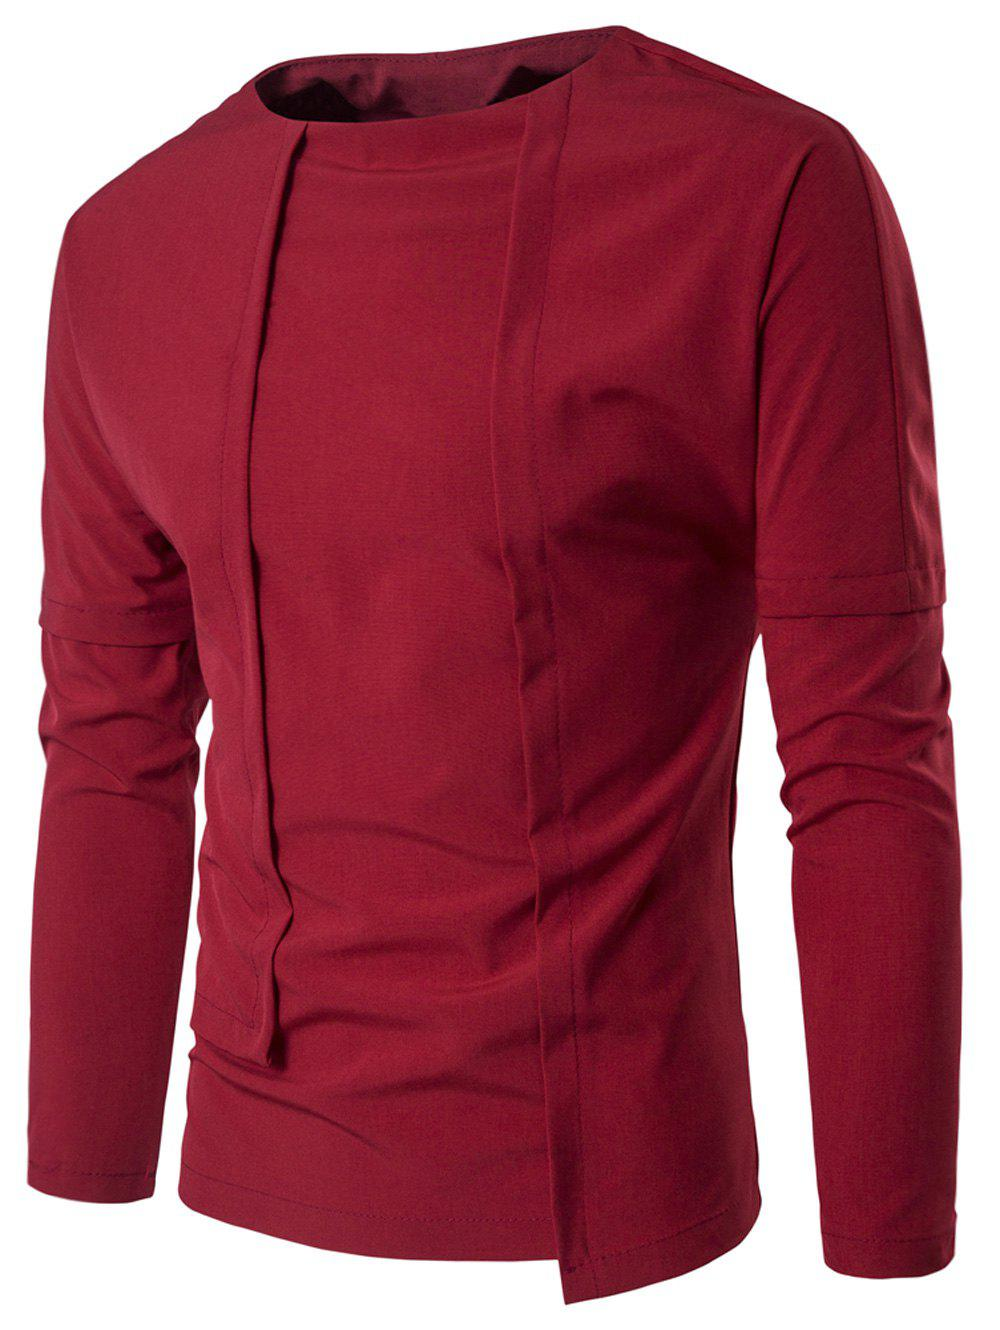 Design t shirt long sleeve - Long Sleeve Asymmetric Panel Design T Shirt Red M